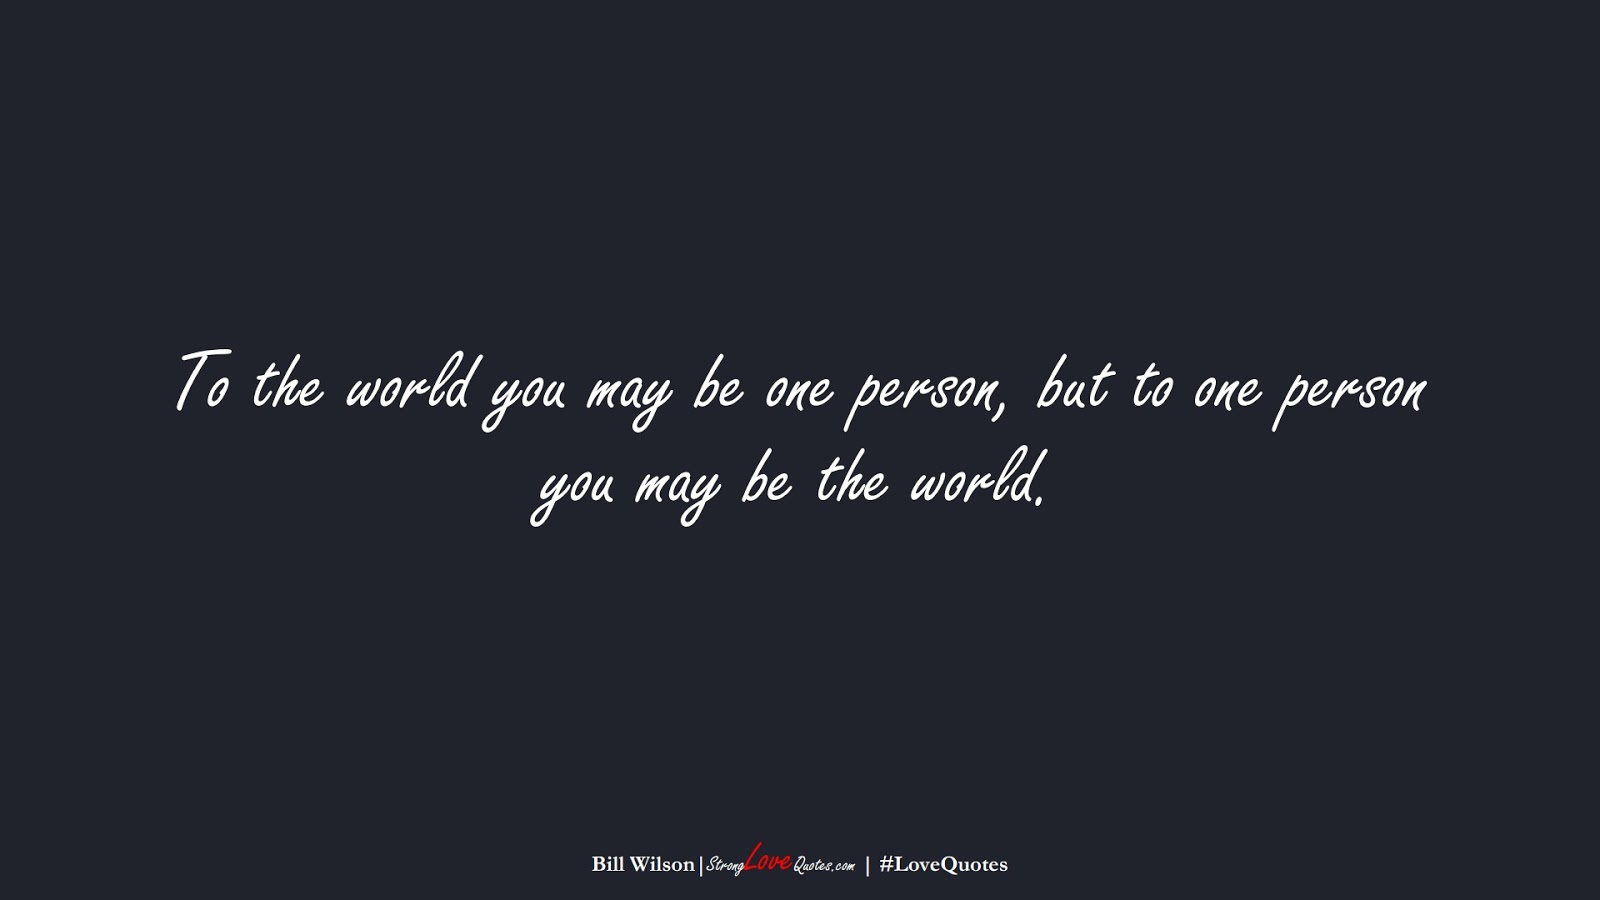 To the world you may be one person, but to one person you may be the world. (Bill Wilson);  #LoveQuotes